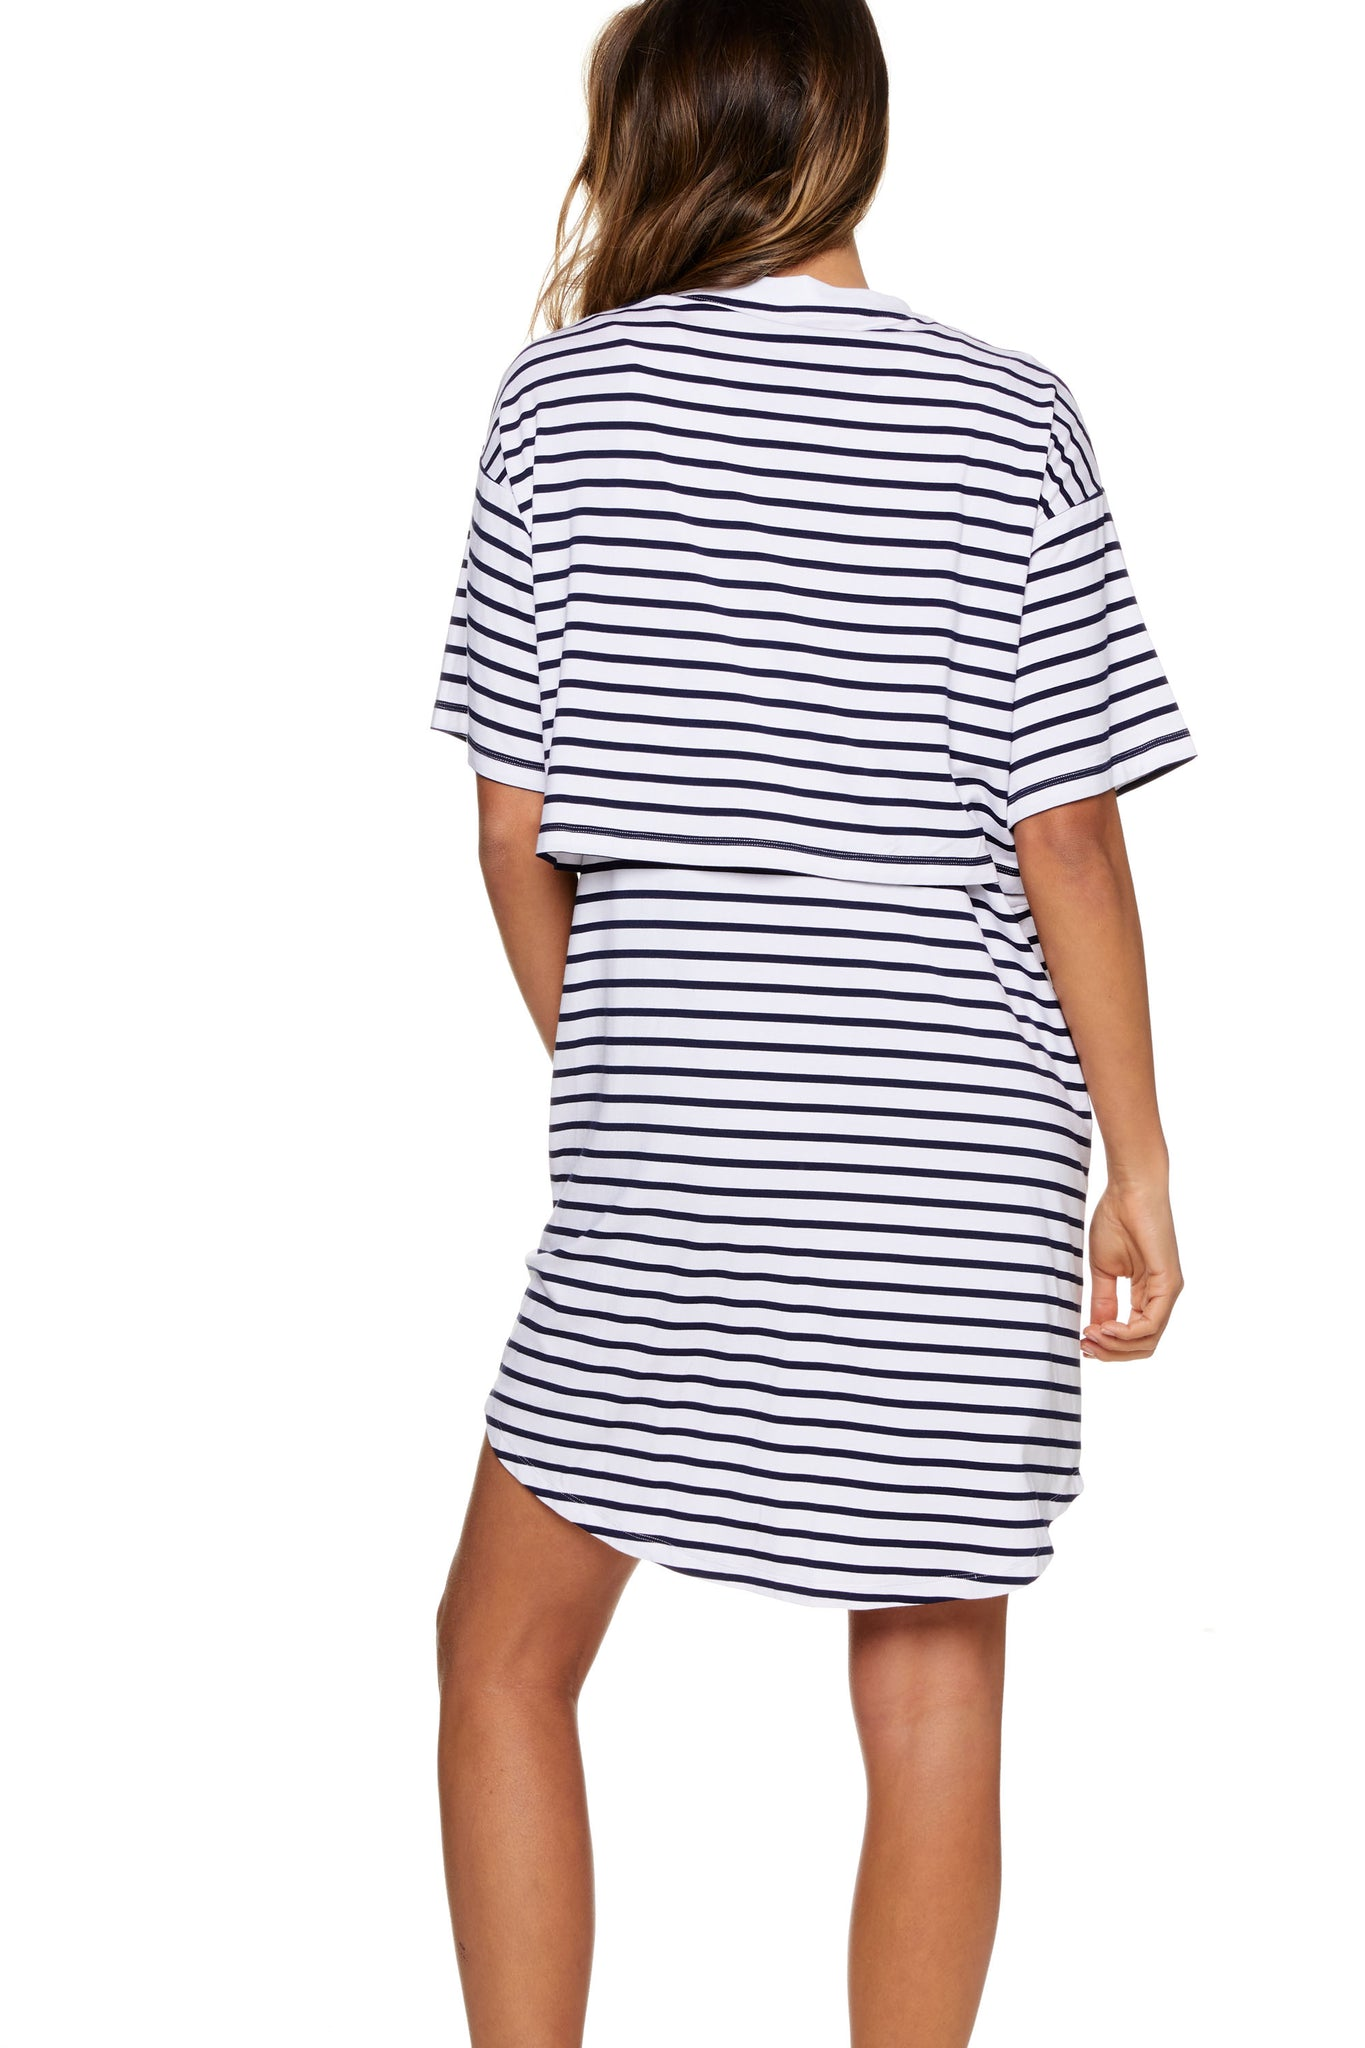 Stripe Maternity and Nursing Pajama Dress Image 7